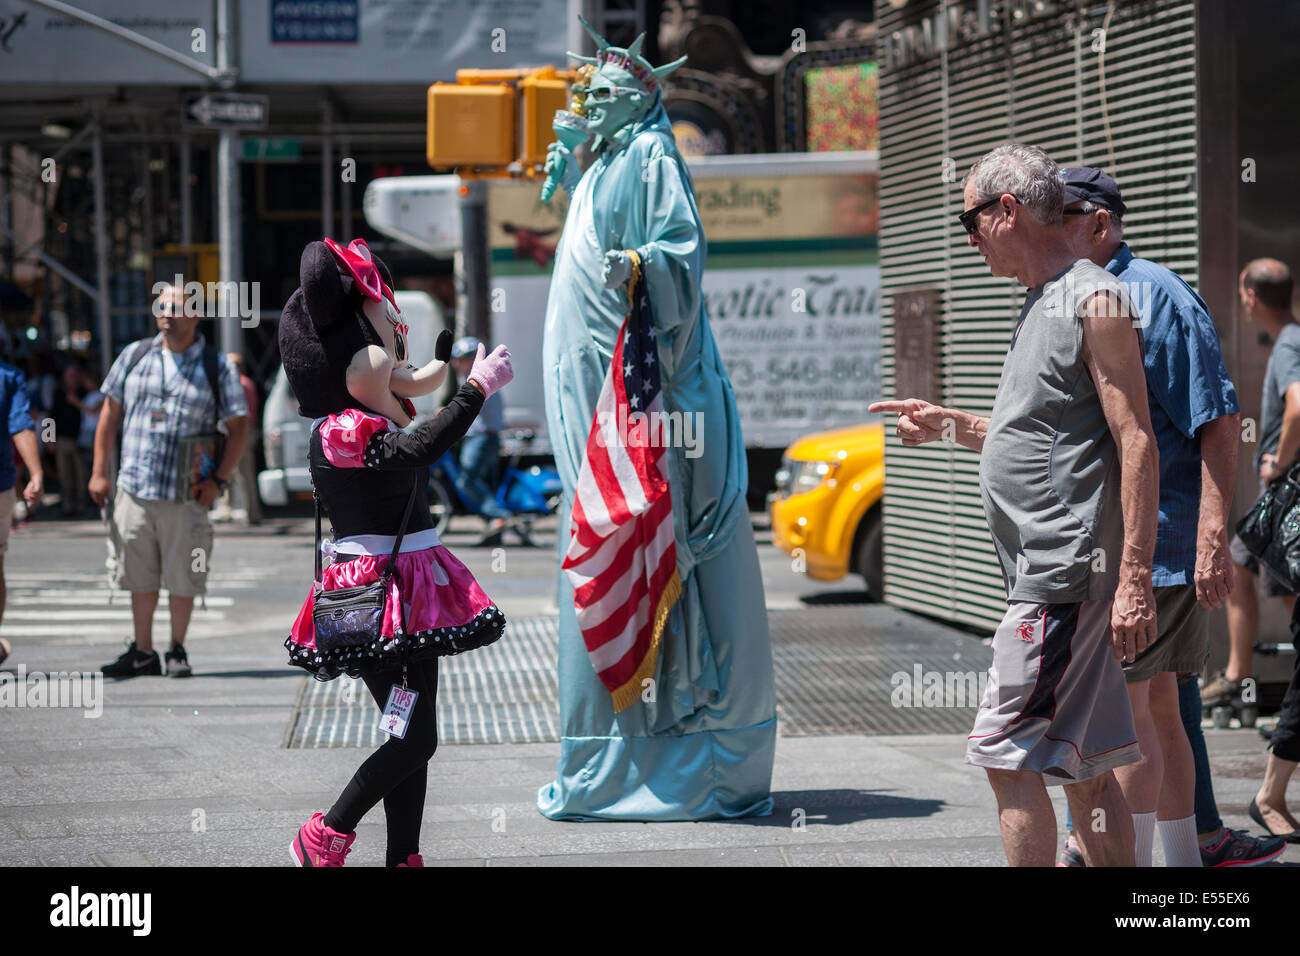 Costumed characters swarm Times Square in New York on Friday, July 18, 2014. - Stock Image